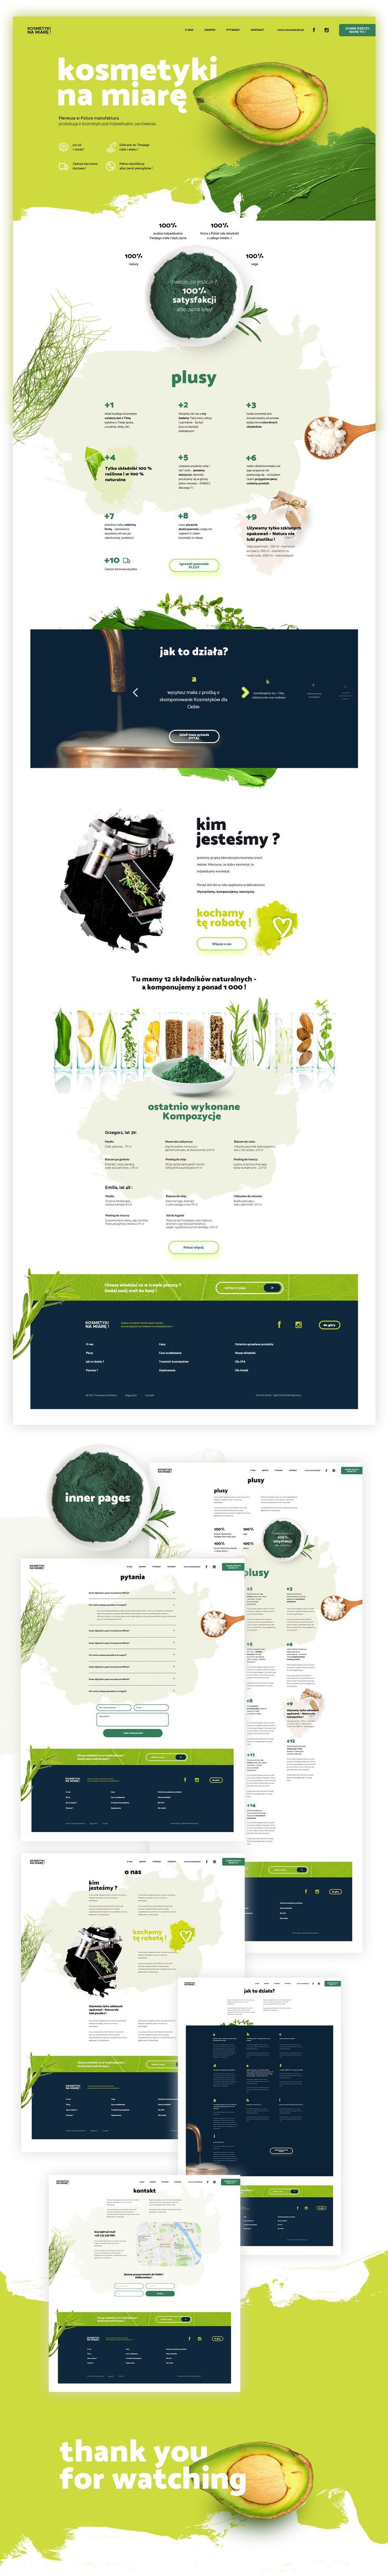 """Check out my @Behance project: """"Natural cosmetics manufacture website"""" https://www.behance.net/gallery/52737353/Natural-cosmetics-manufacture-website"""